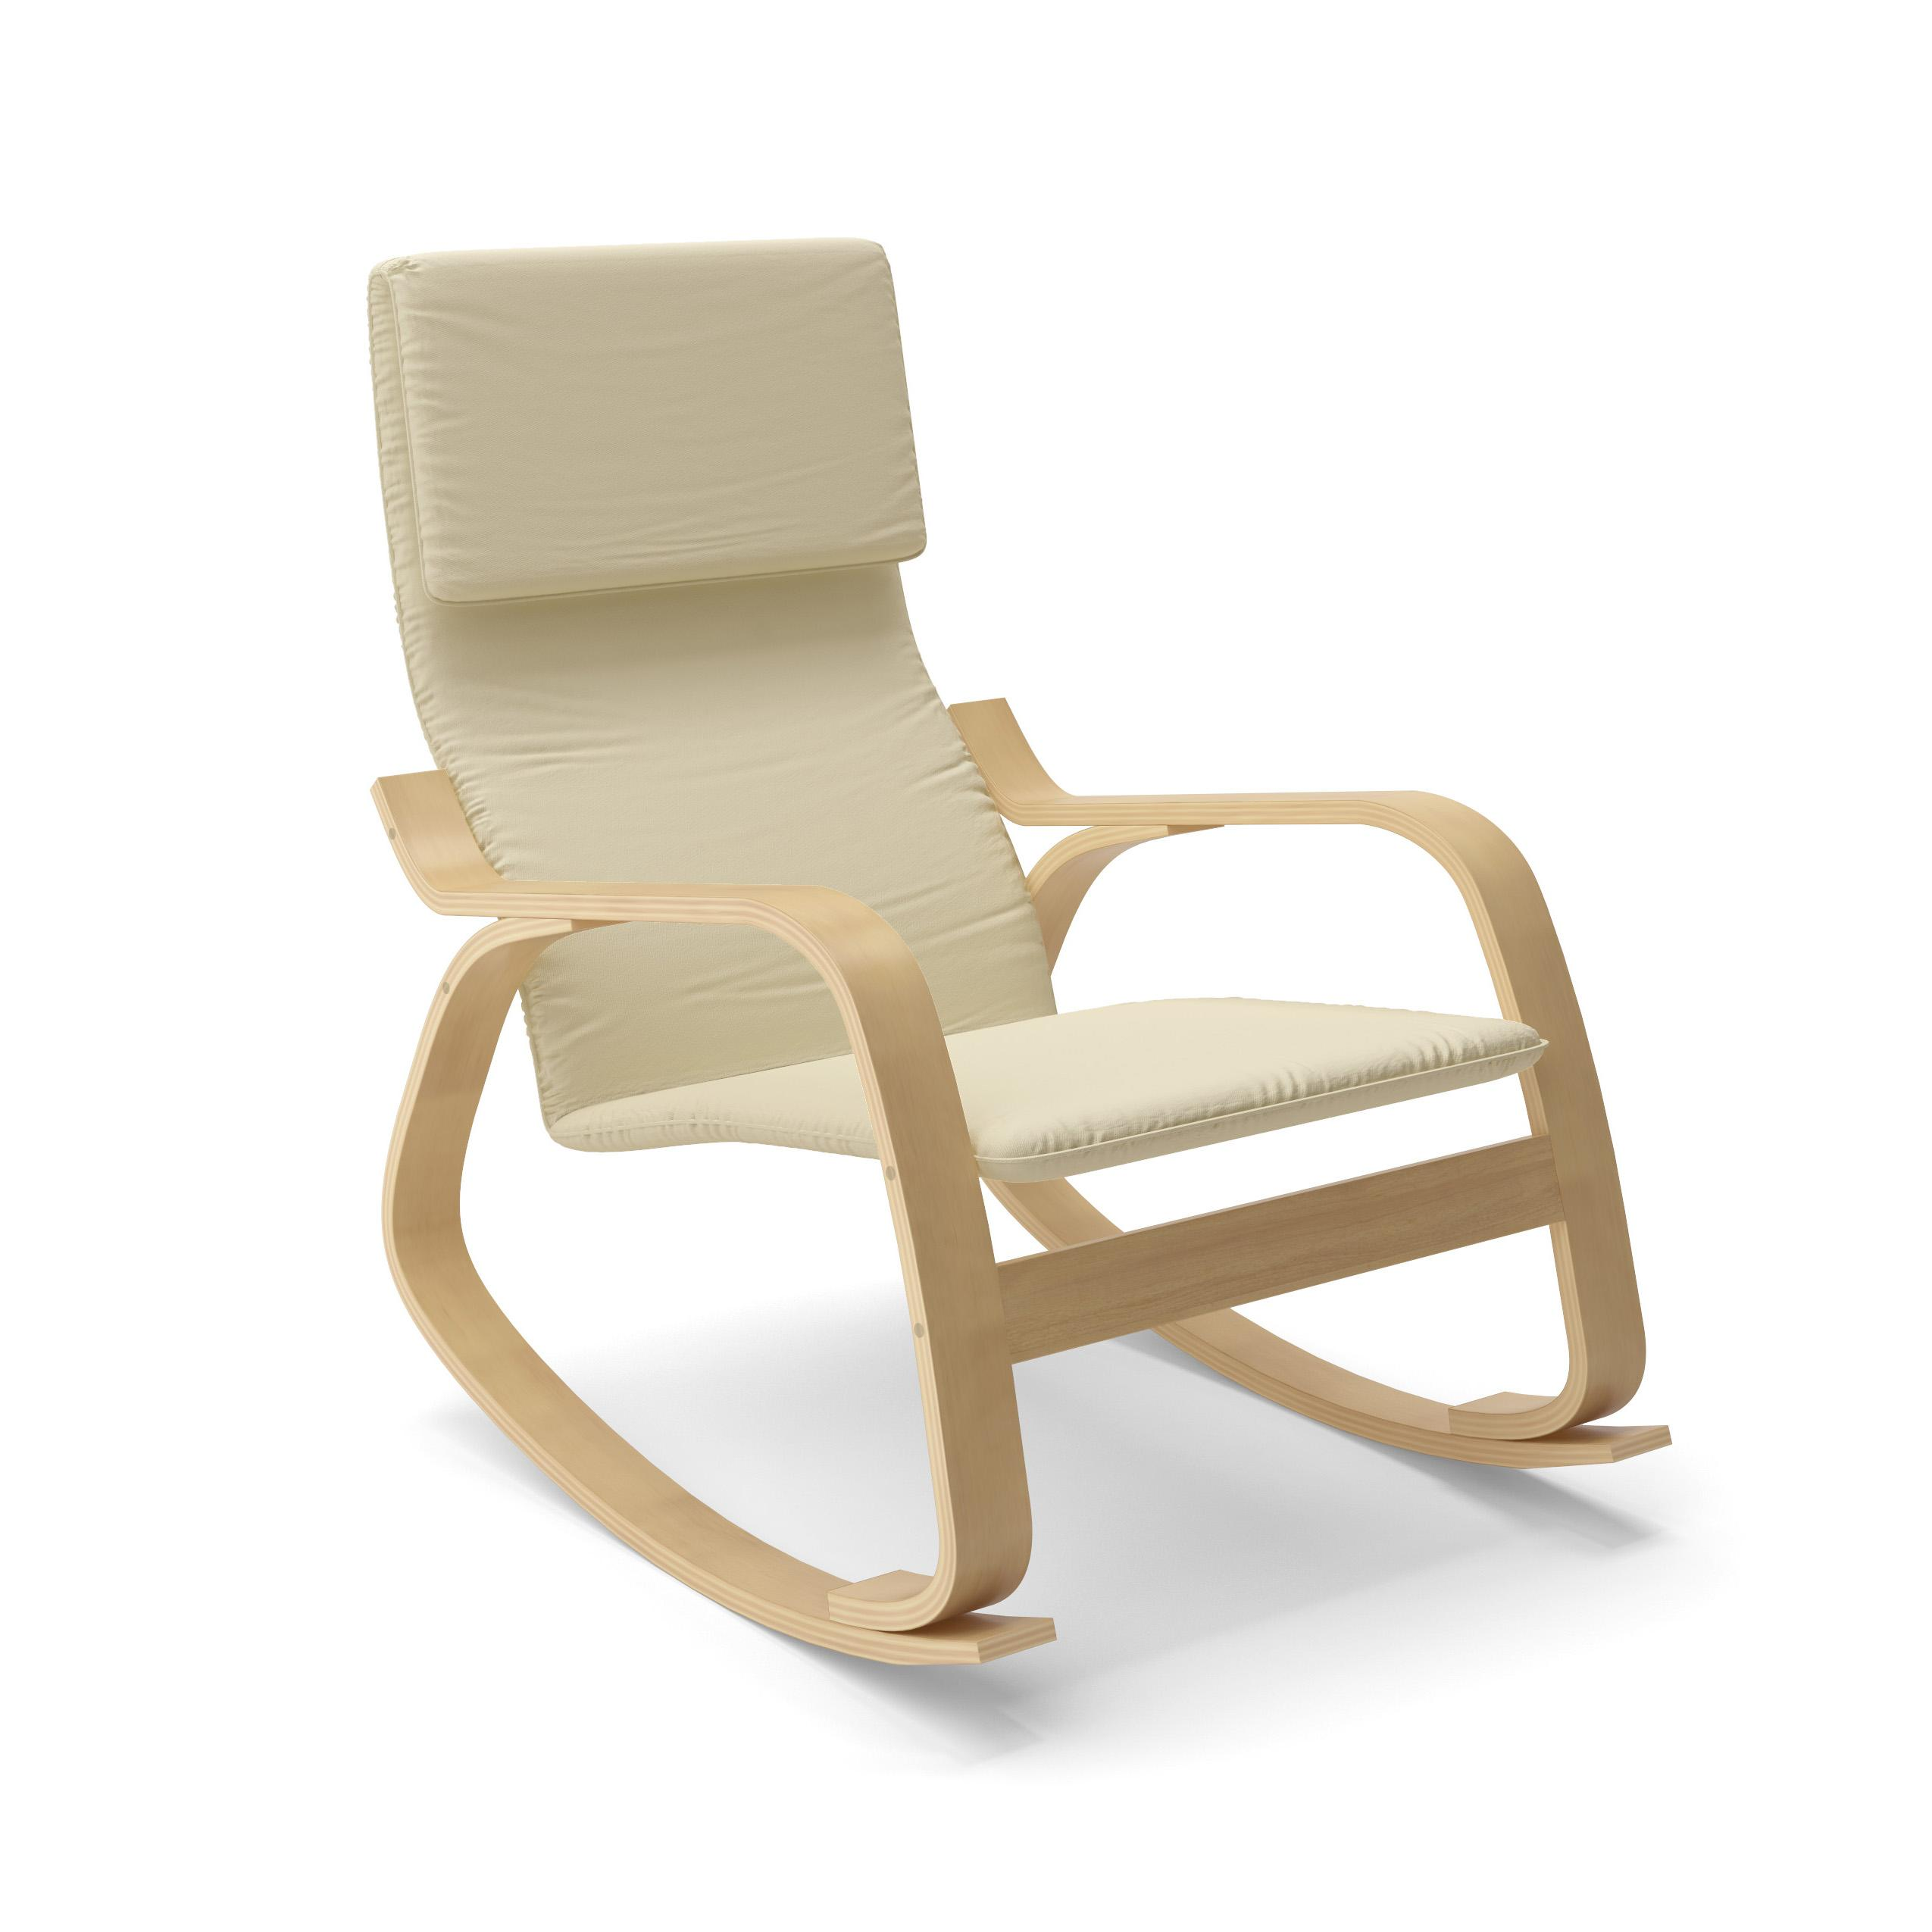 amazoncom corliving laqc aquios bentwood contemporary  - from the manufacturer